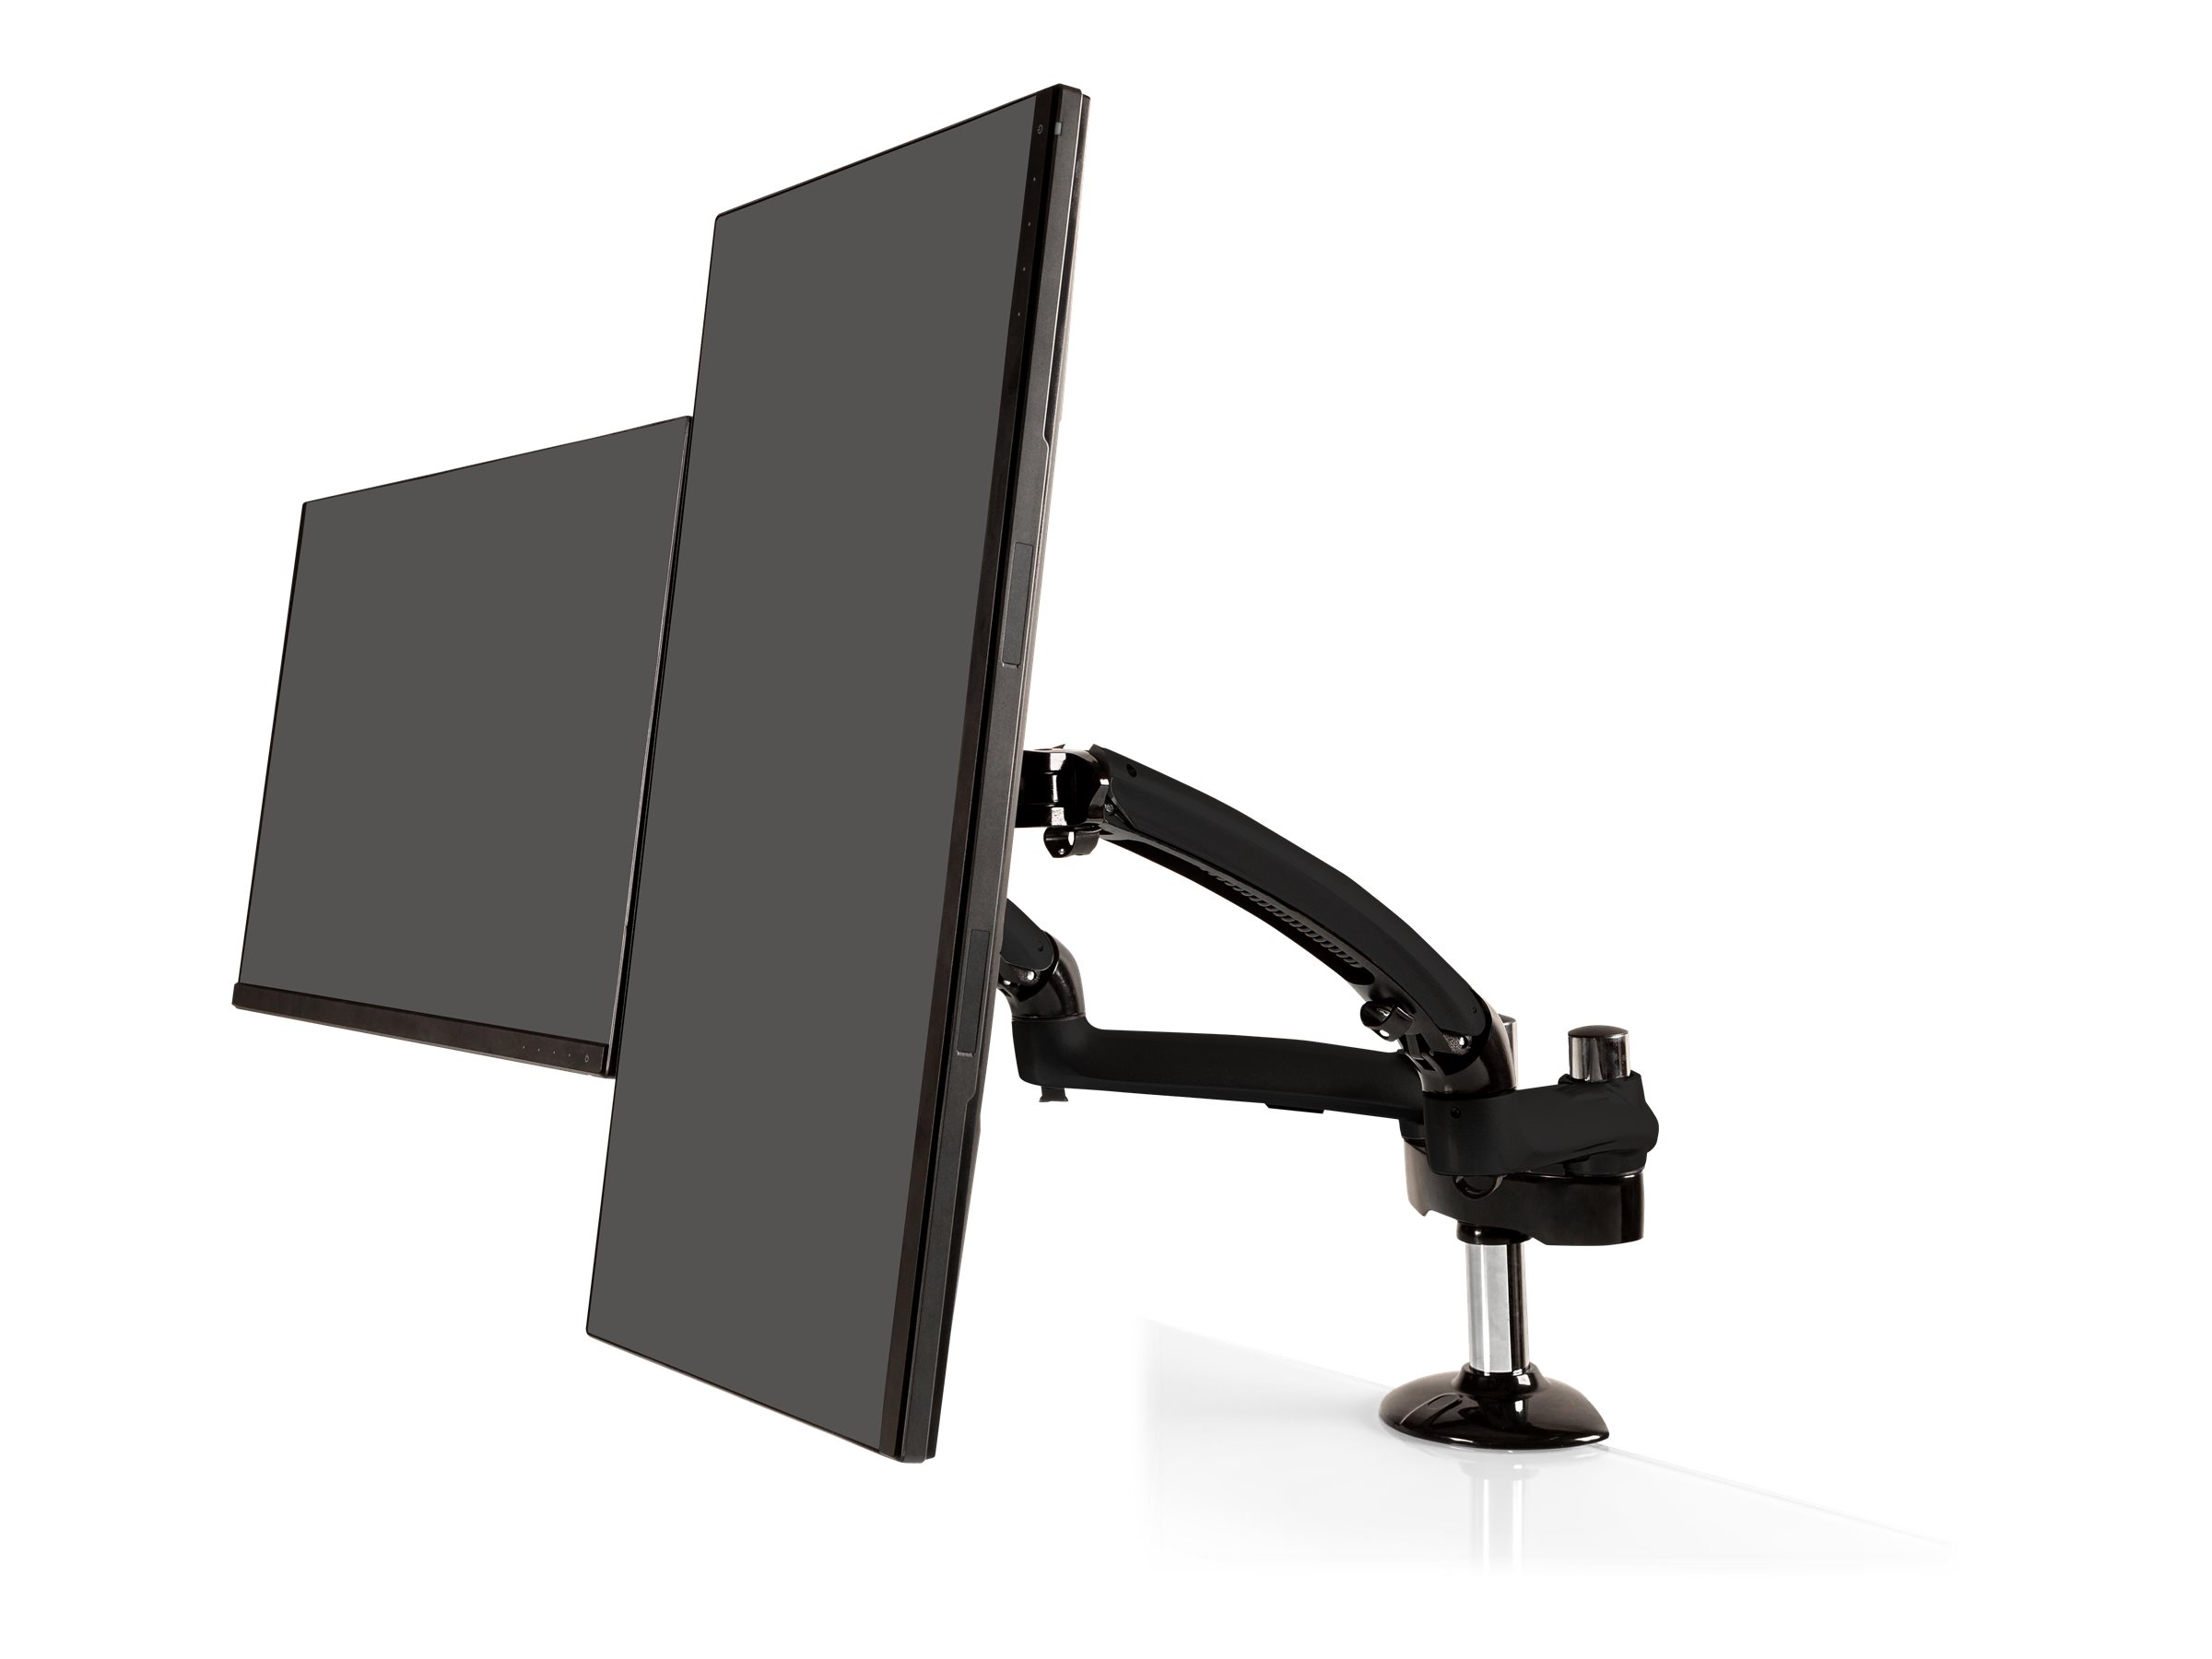 Ergotech Freedom Arm Dual FDM-PC-G02 - desk mount (adjustable arm)